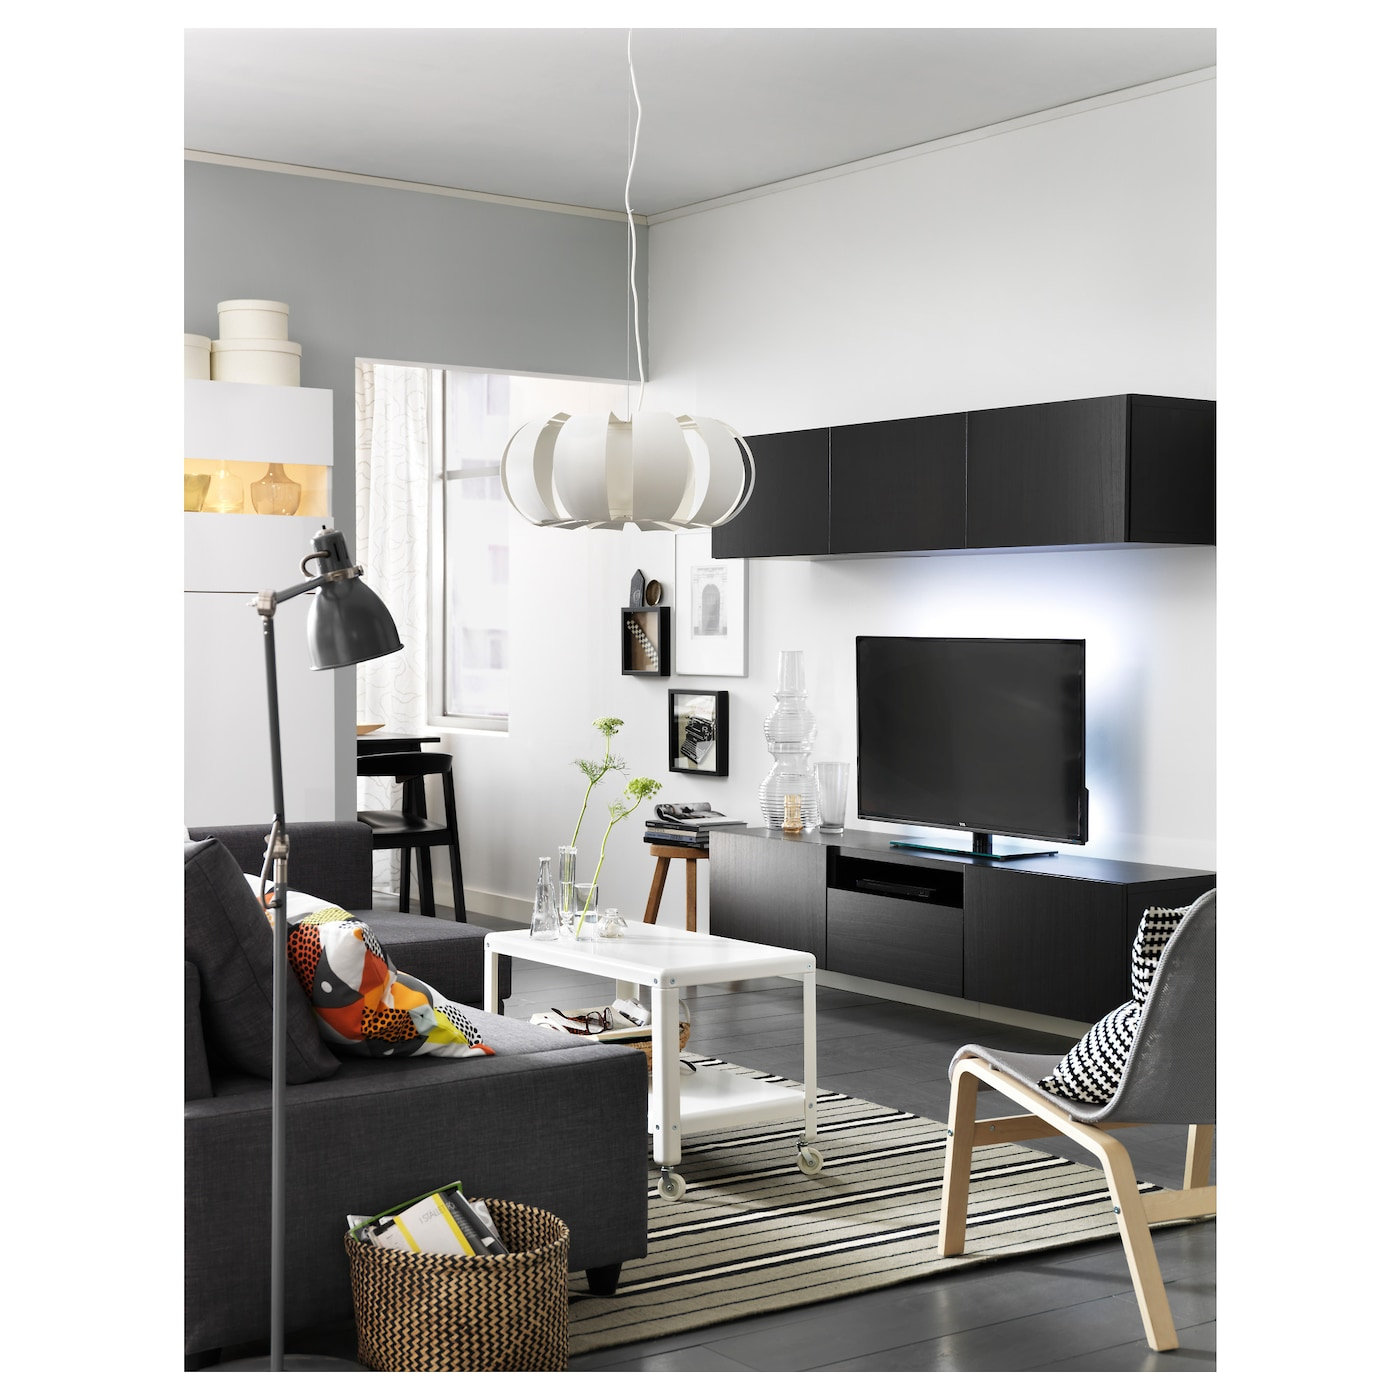 ar d lampadaire liseuse gris ikea. Black Bedroom Furniture Sets. Home Design Ideas